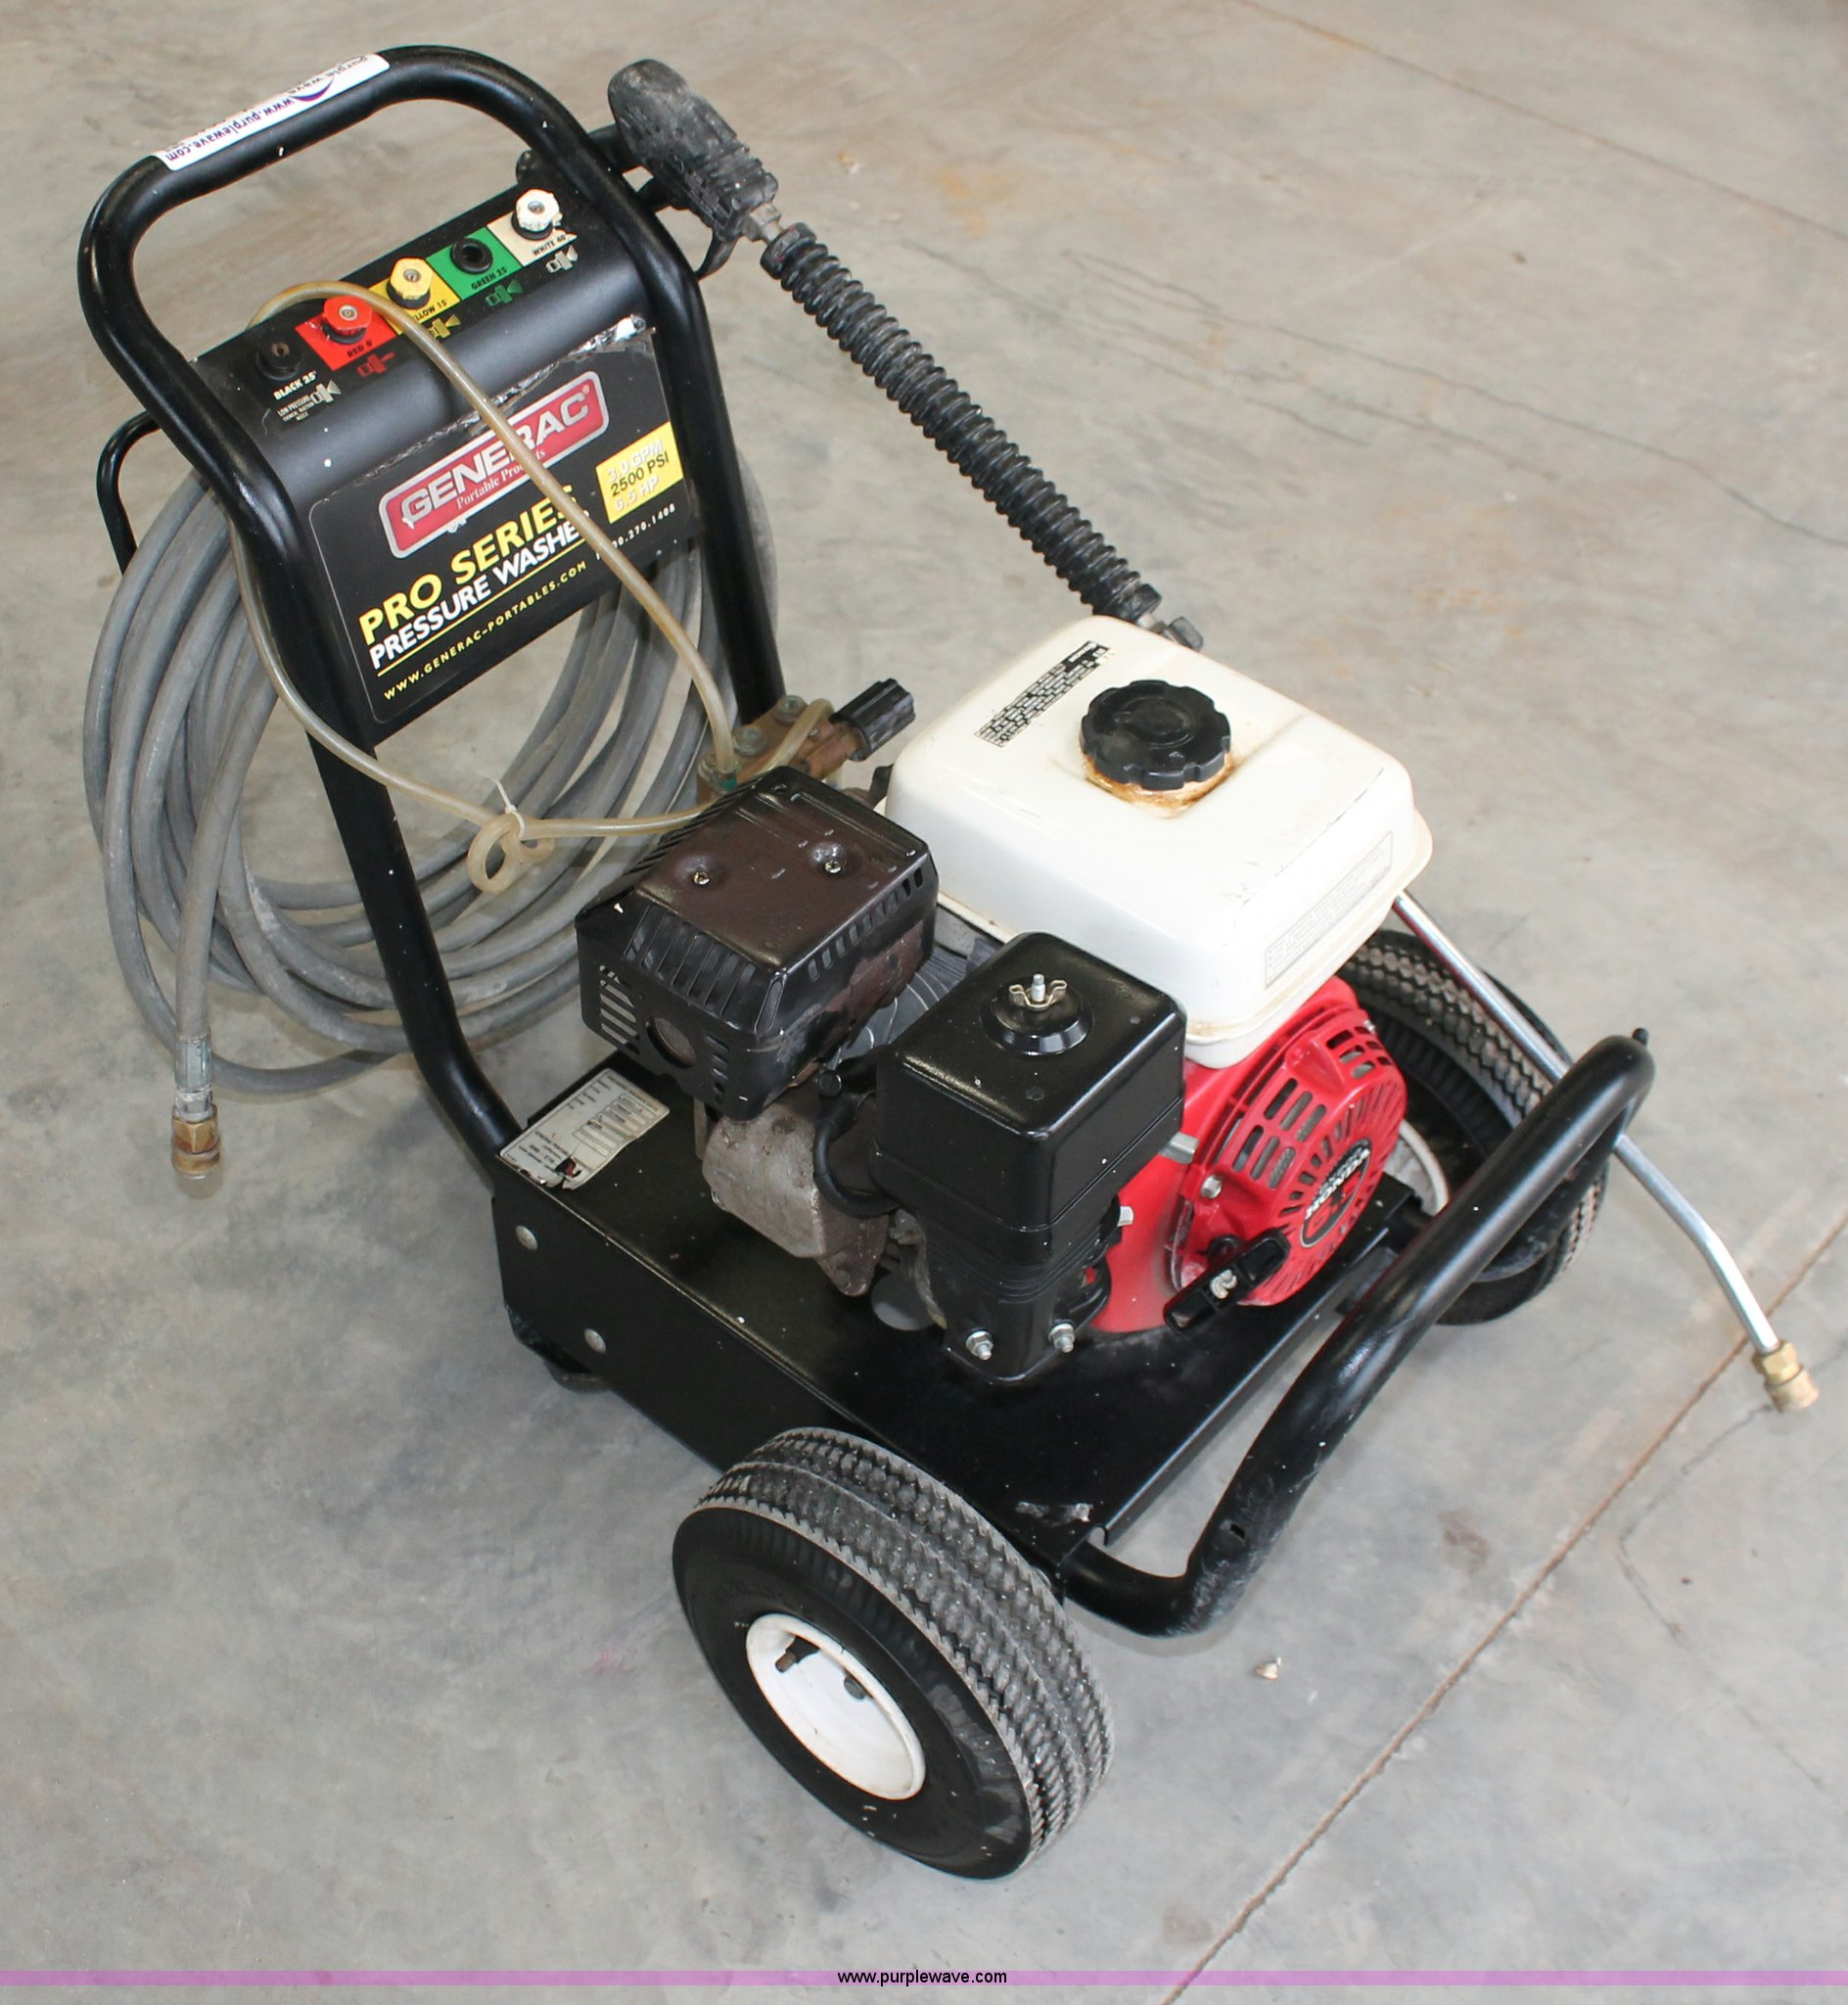 Generac Pro series pressure washer | Item V9046 | SOLD! Wedn